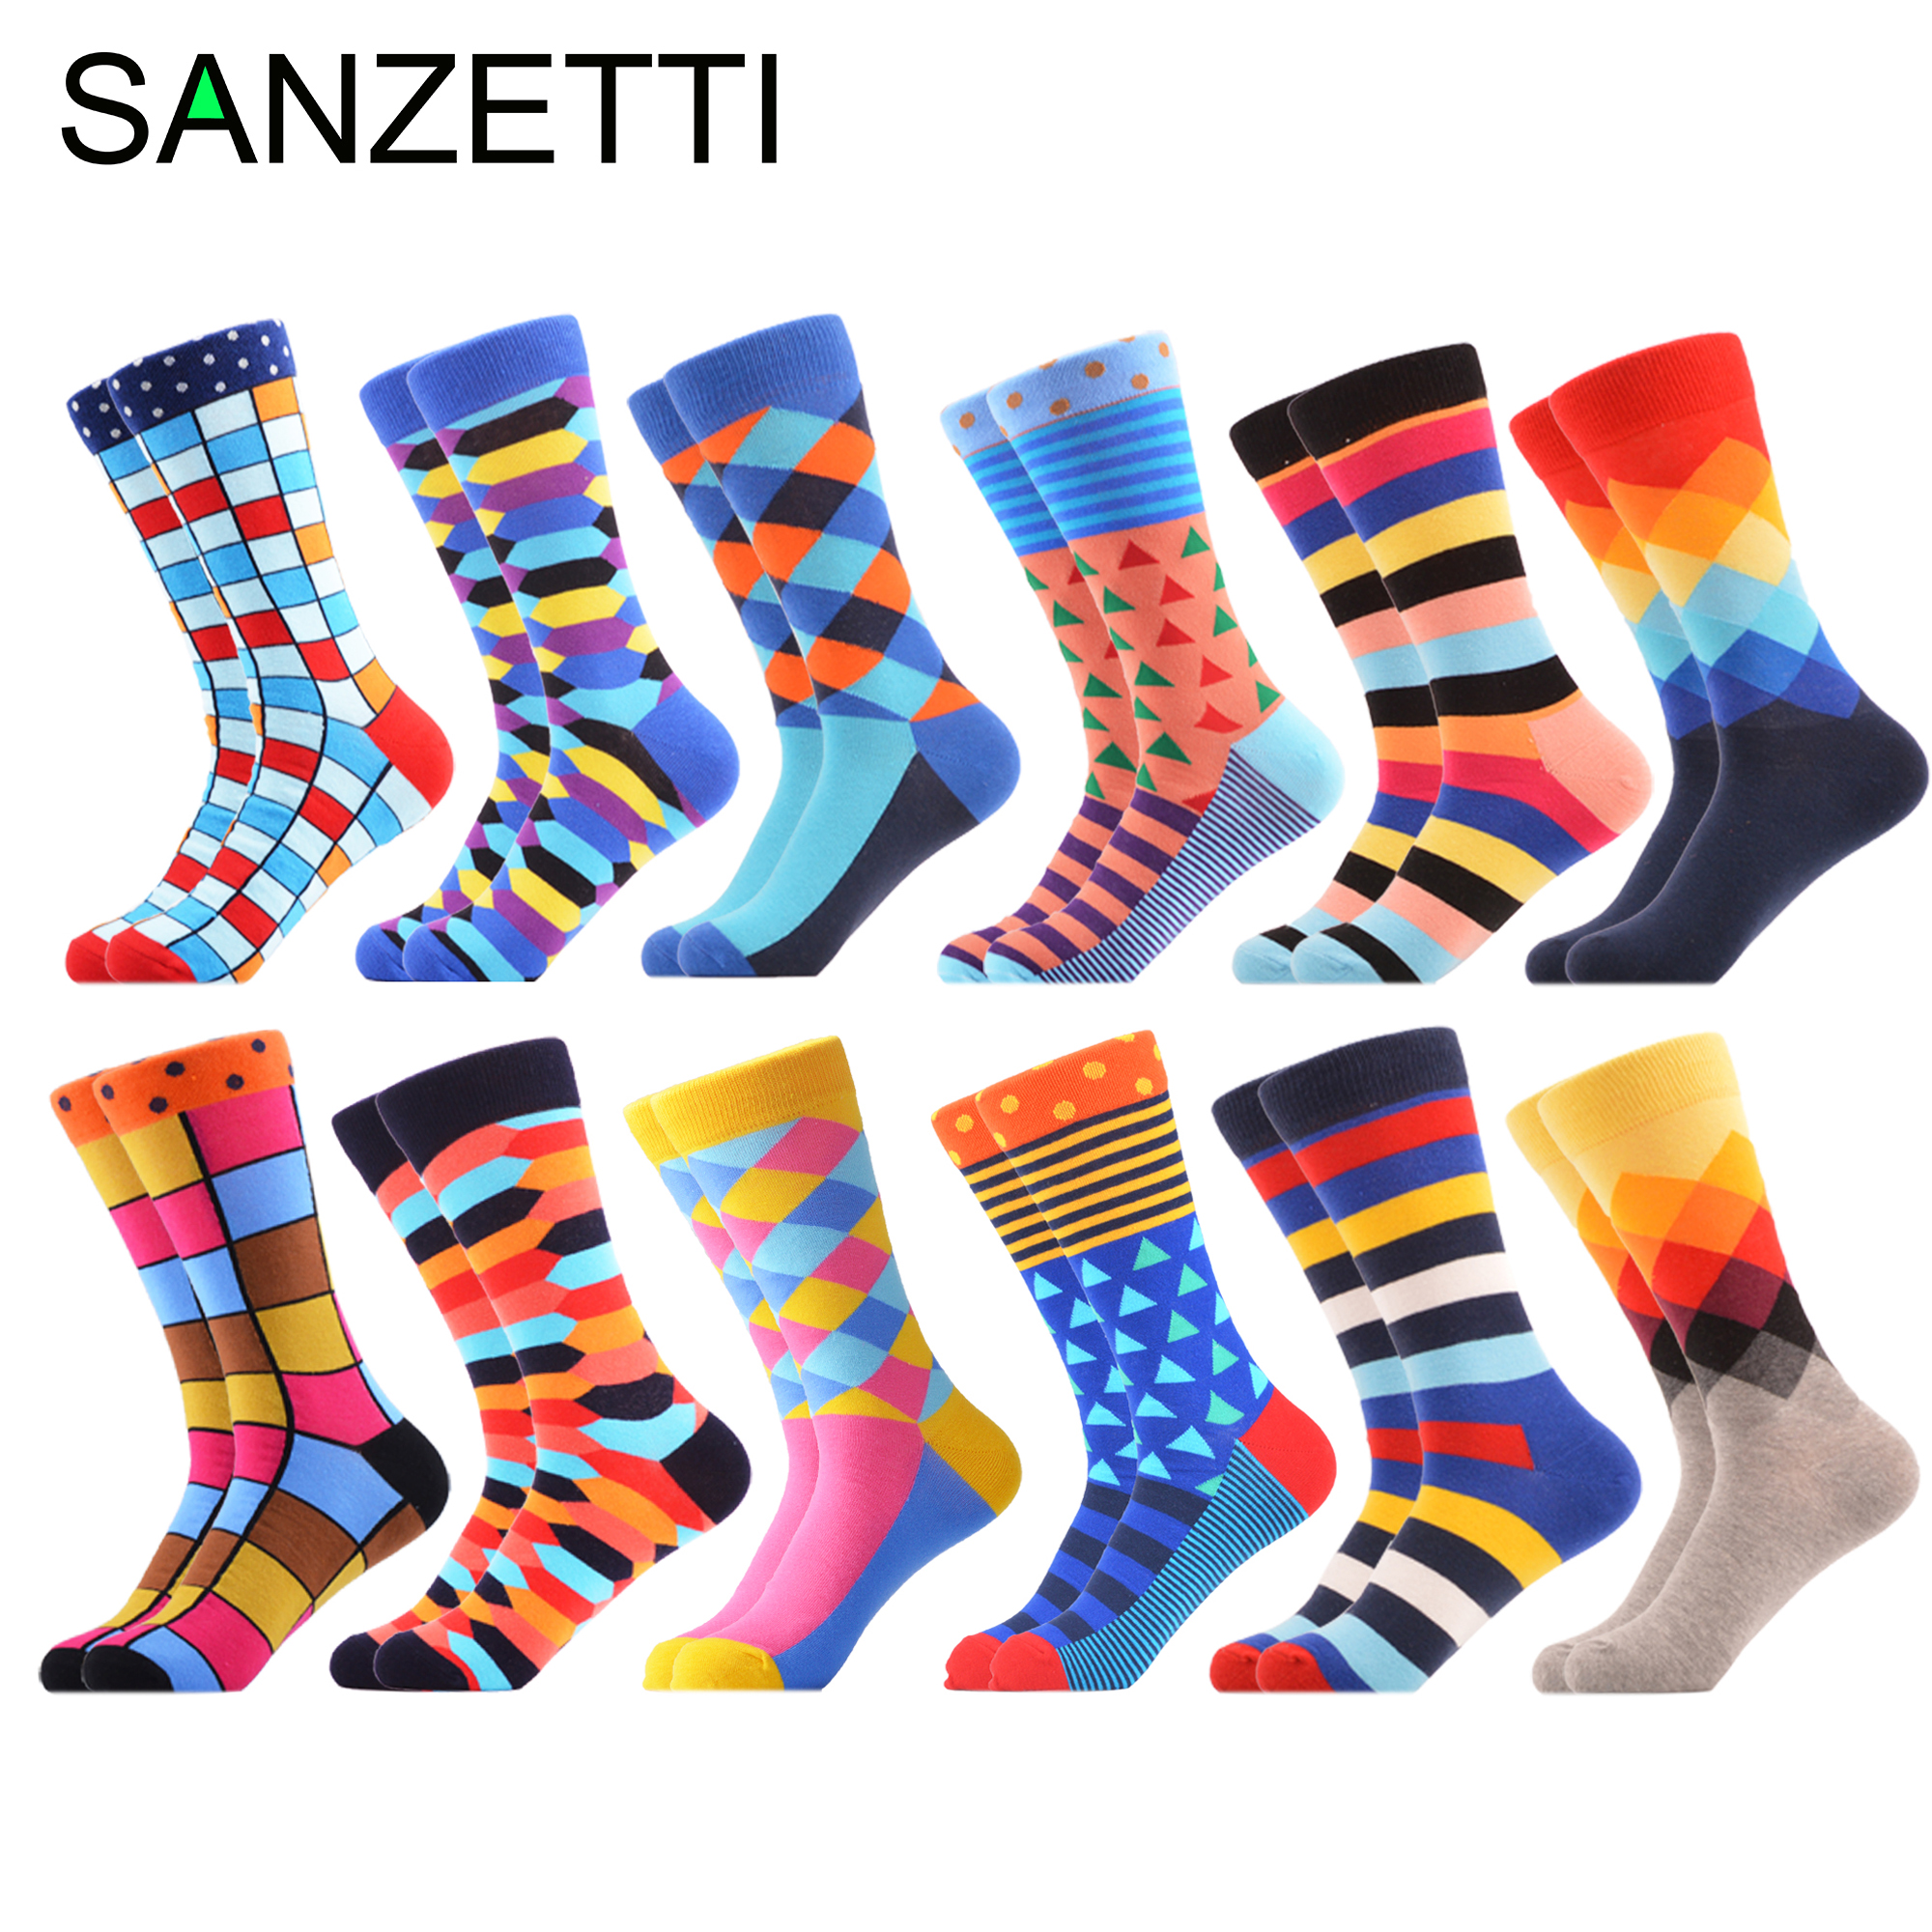 SANZETTI 12 Pairs Lot 2019 Men Combed Cotton Casual Tube Socks Colorful Dress Striped Plaid Comfortable Party Gift Classic Socks in Men 39 s Socks from Underwear amp Sleepwears